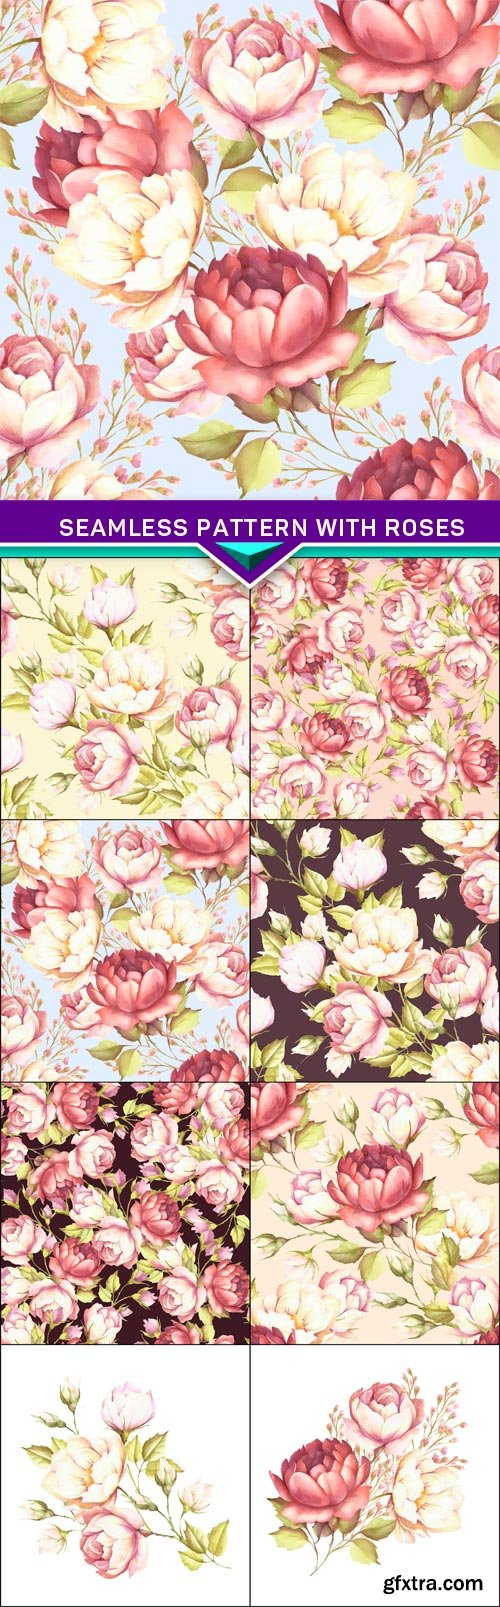 Seamless pattern with flower roses 8X JPEG